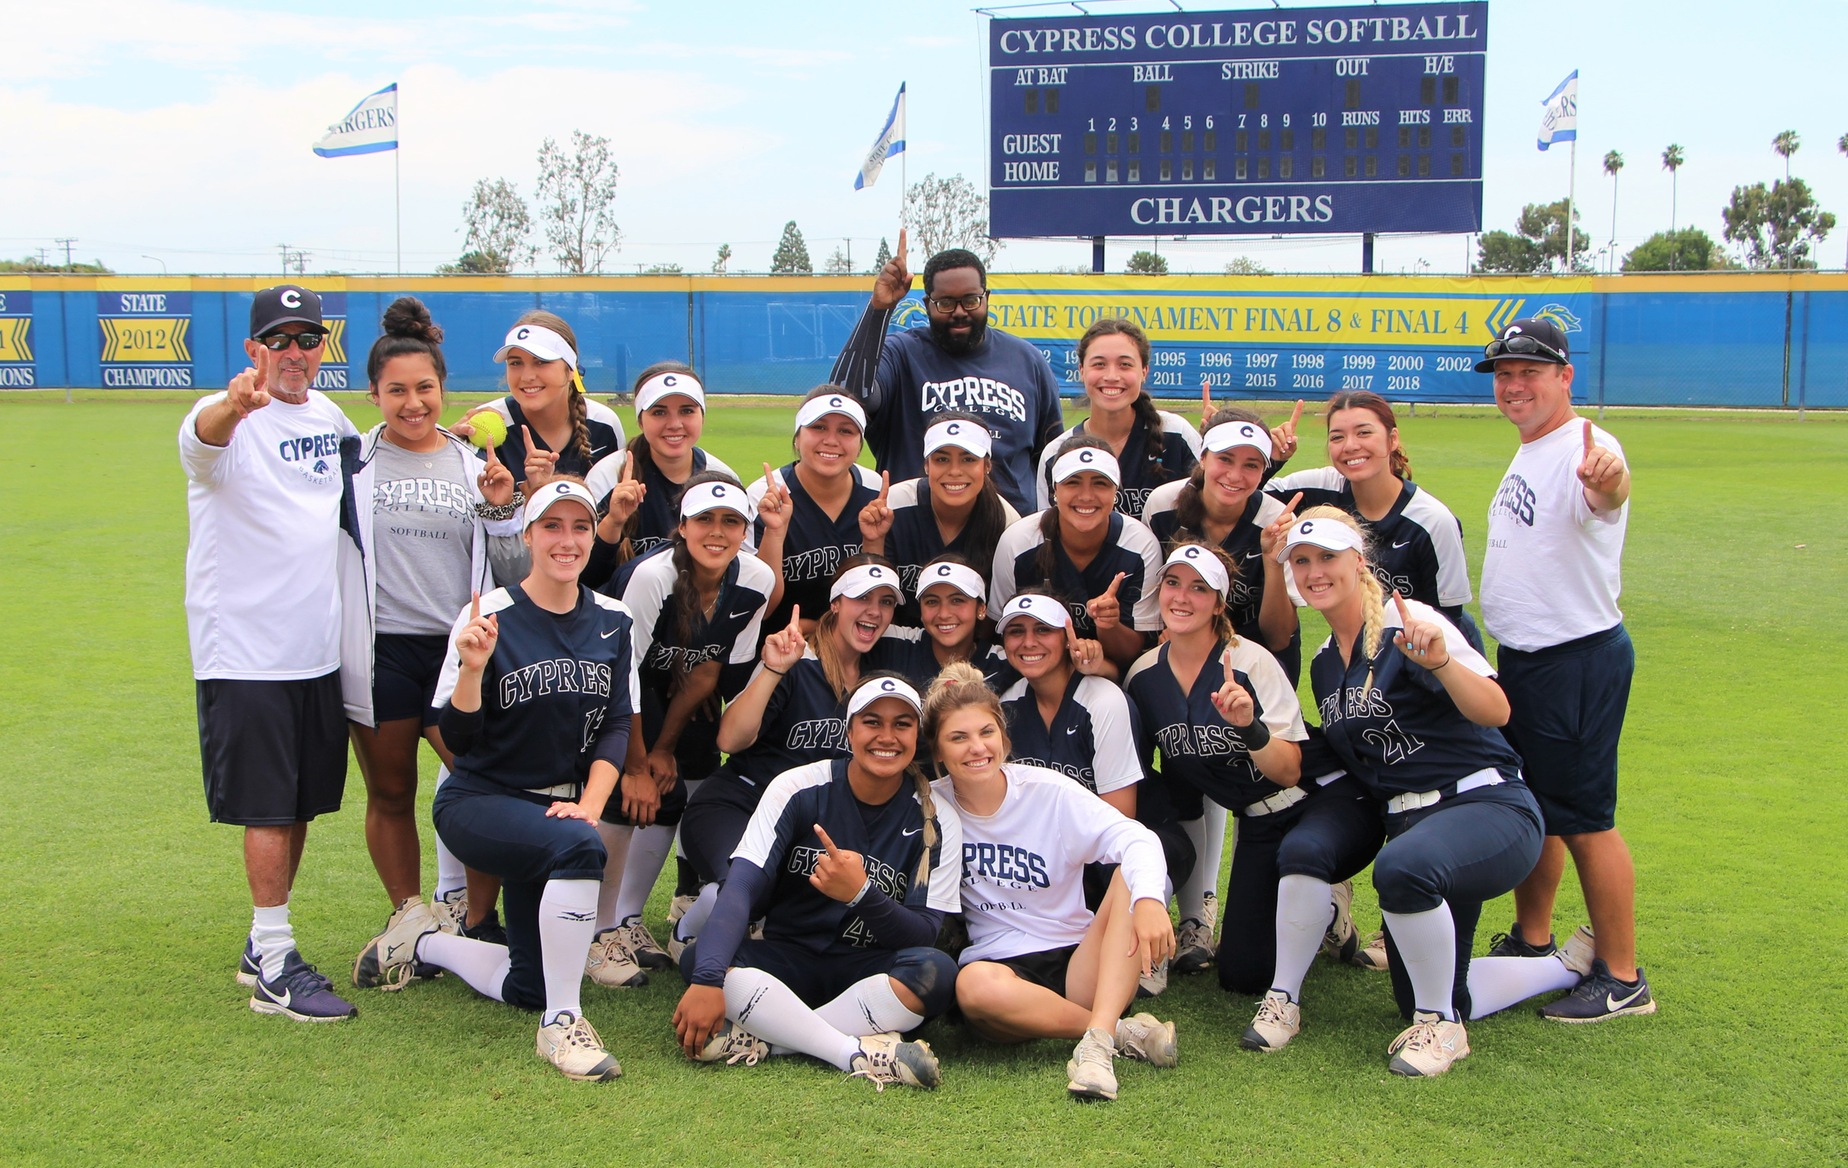 Cypress Softball Headed to Fifth Consecutive CCCAA State Championship Tournament